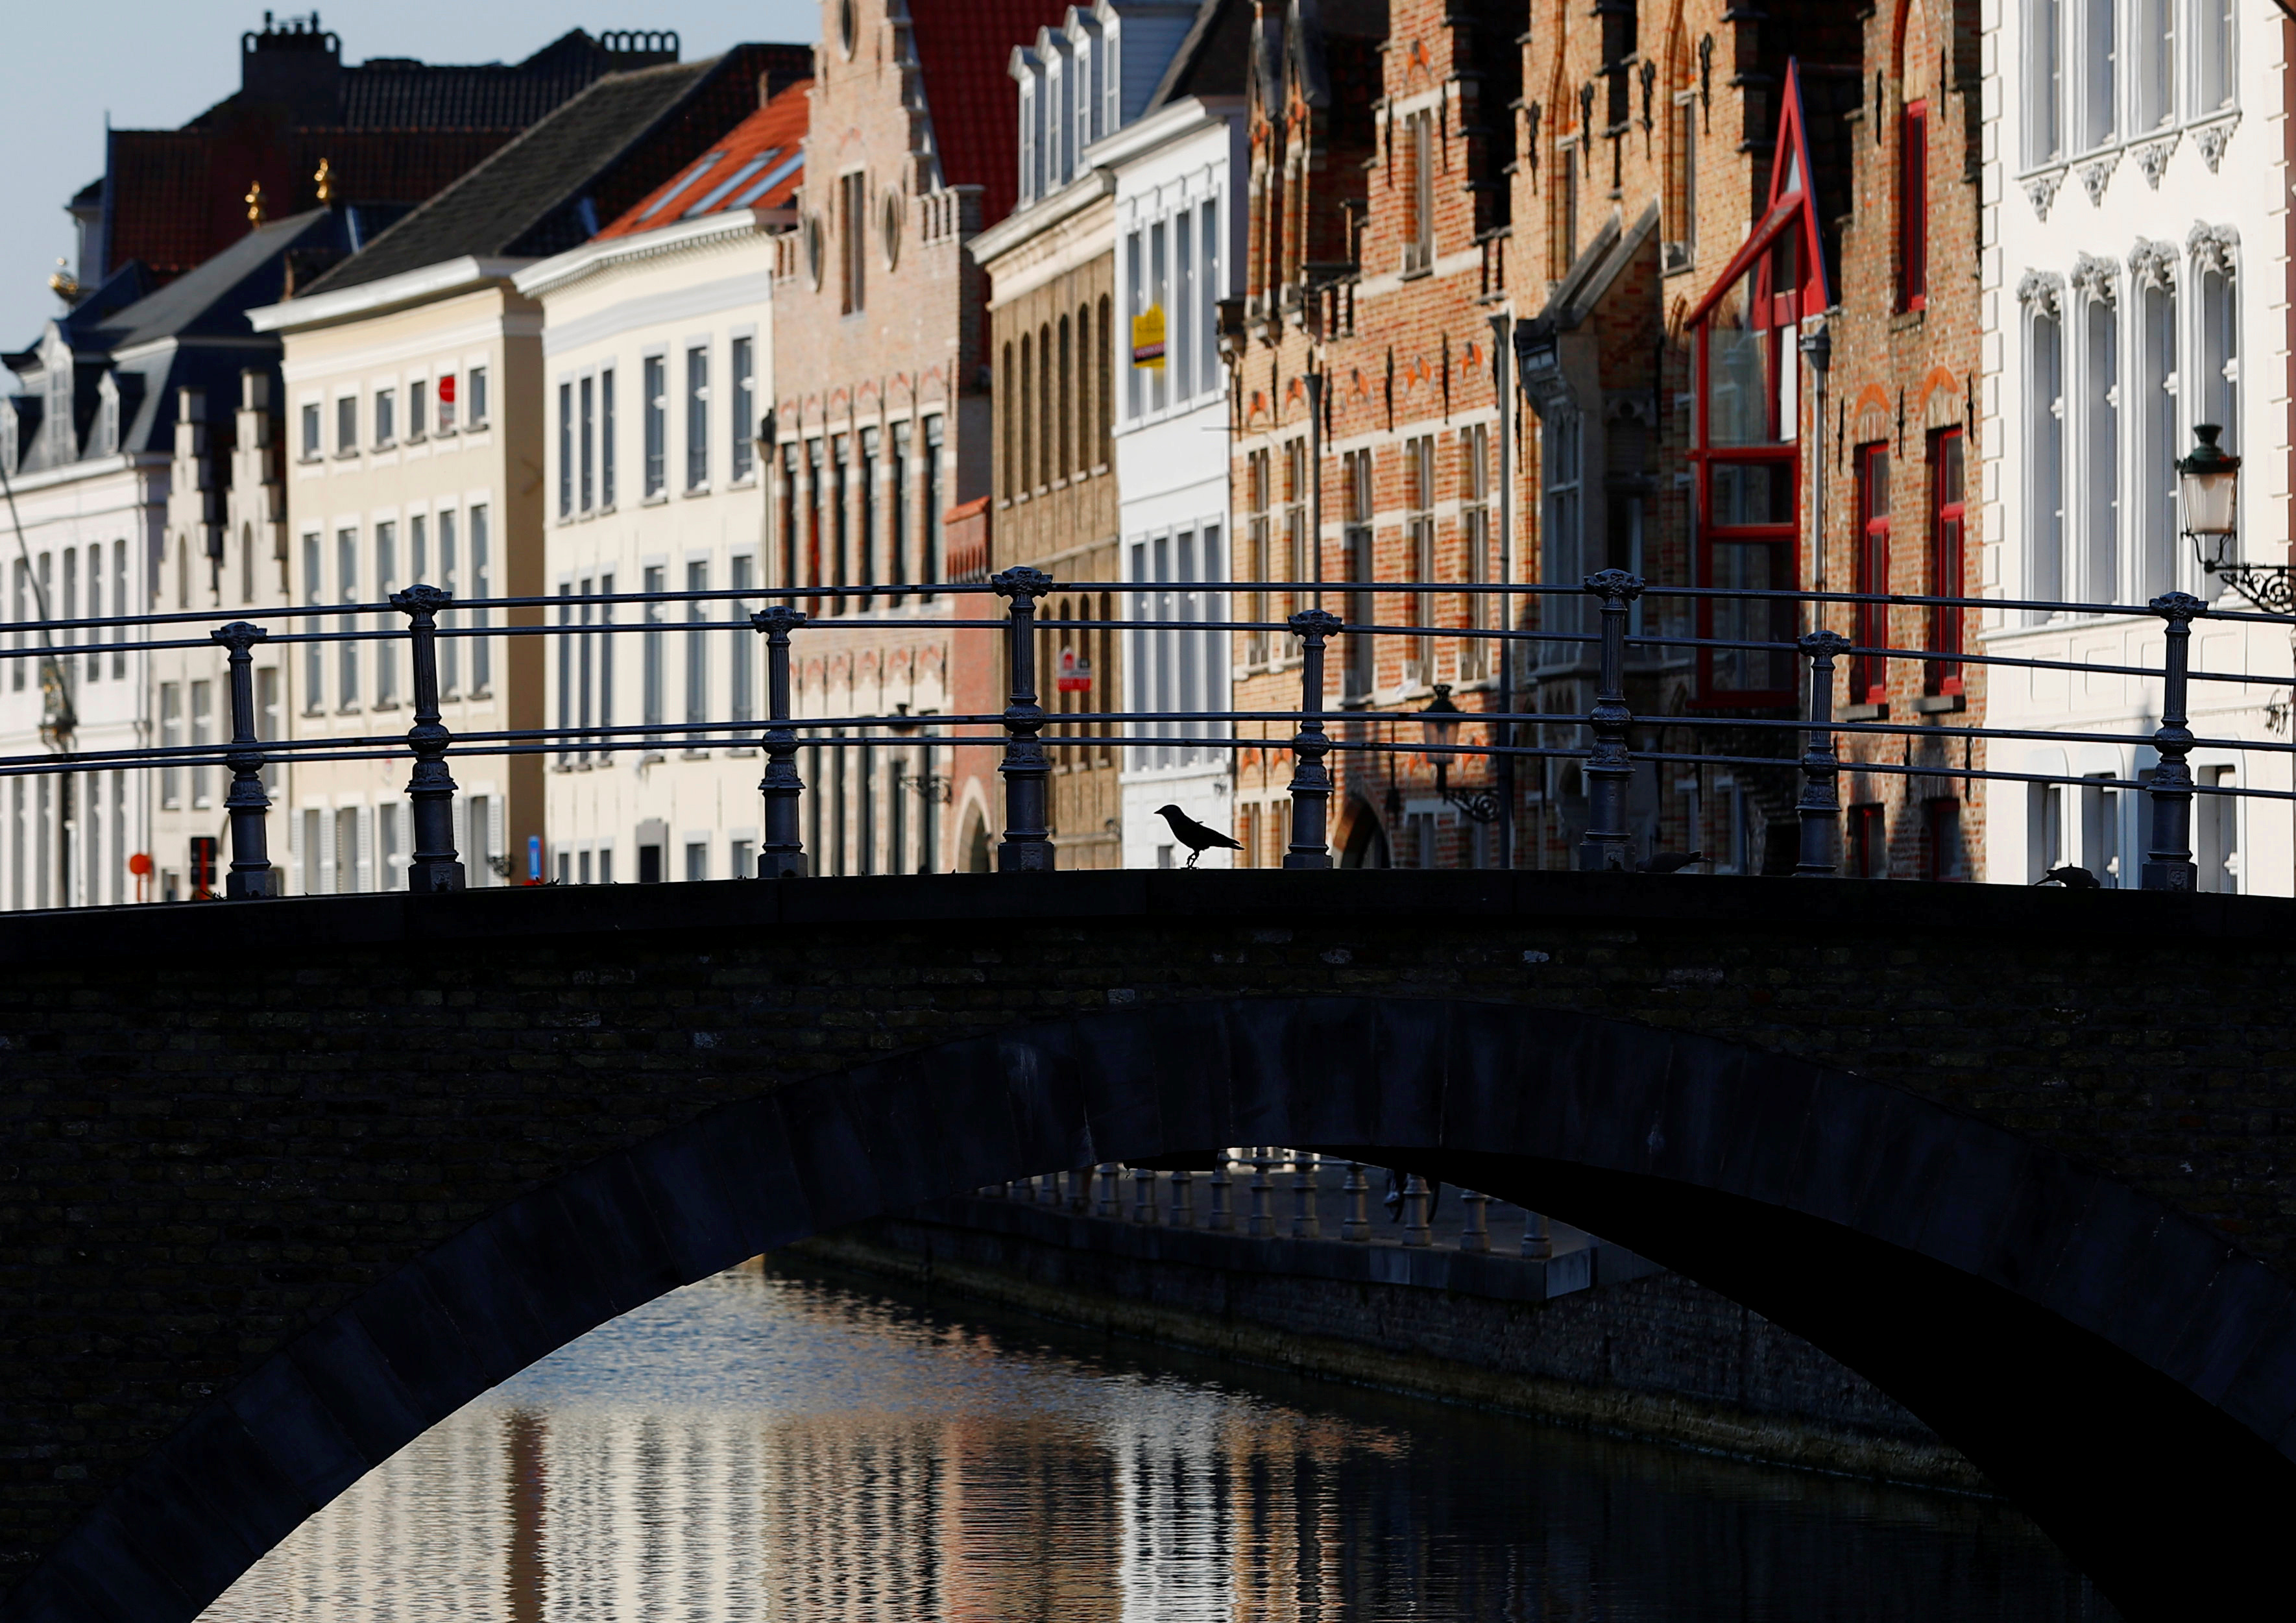 A pigeon is seen on a deserted bridge crossing a canal in the old town of Bruges during the lockdown imposed by the Belgian government, Belgium April 21, 2020. REUTERS/Francois Lenoir